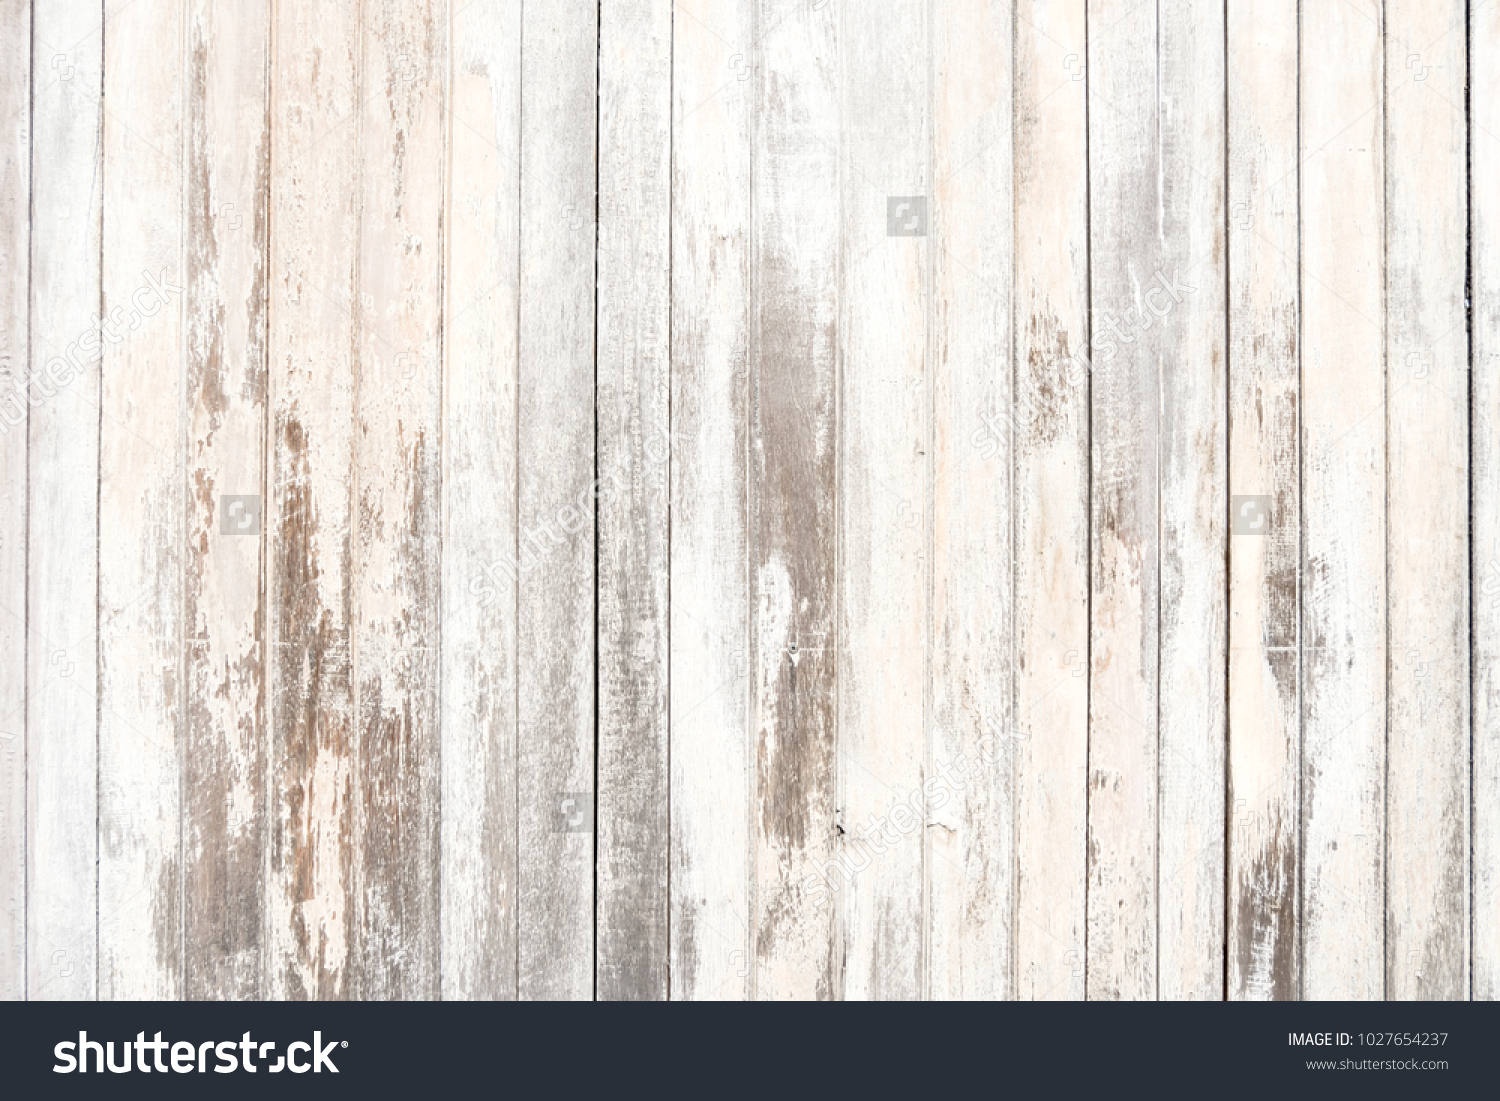 Old wood texture and background in vintage tone. Plank light brown wooden wall background. #1027654237